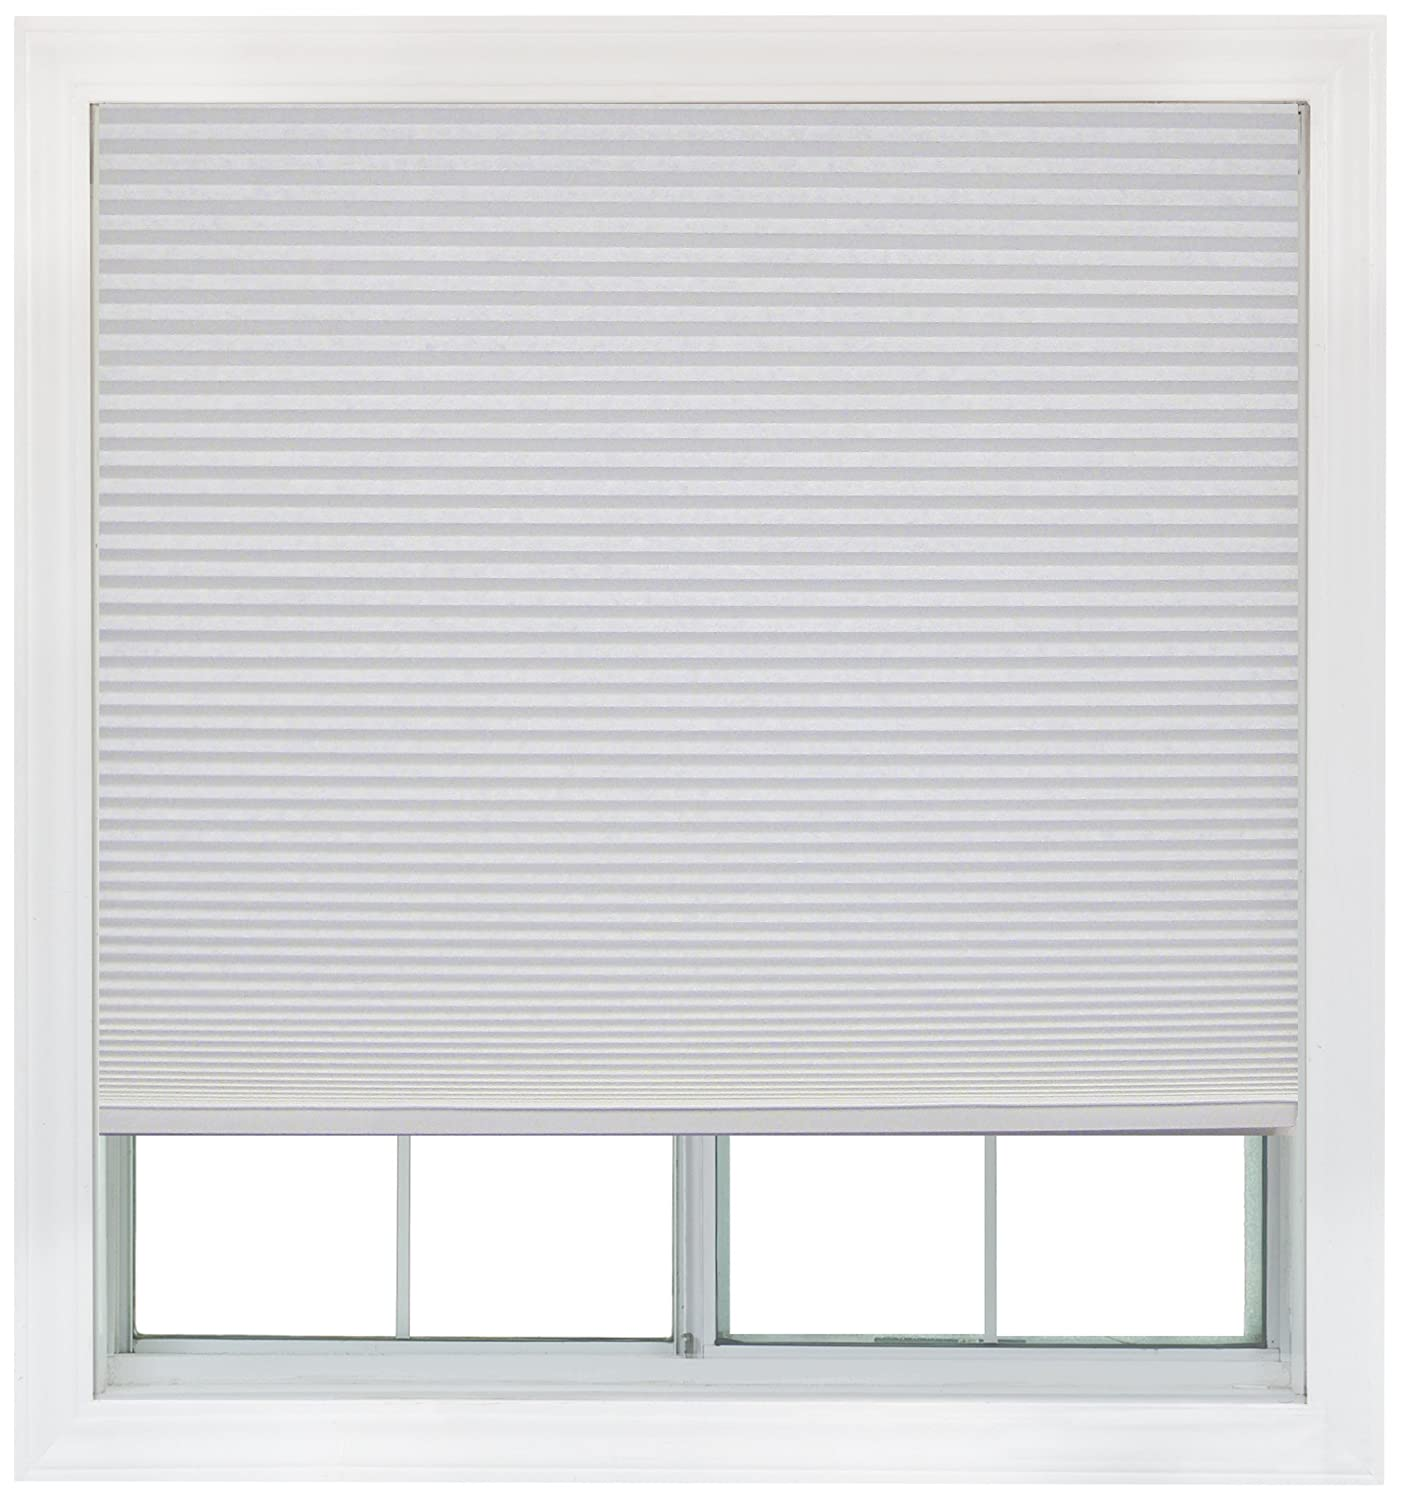 36 inch window blinds - Amazon Com Easy Lift 36 Inch By 64 Inch Trim At Home Fits Windows 21 Inches To 36 Inches Wide Cordless Honeycomb Cellular Shade Light Filtering